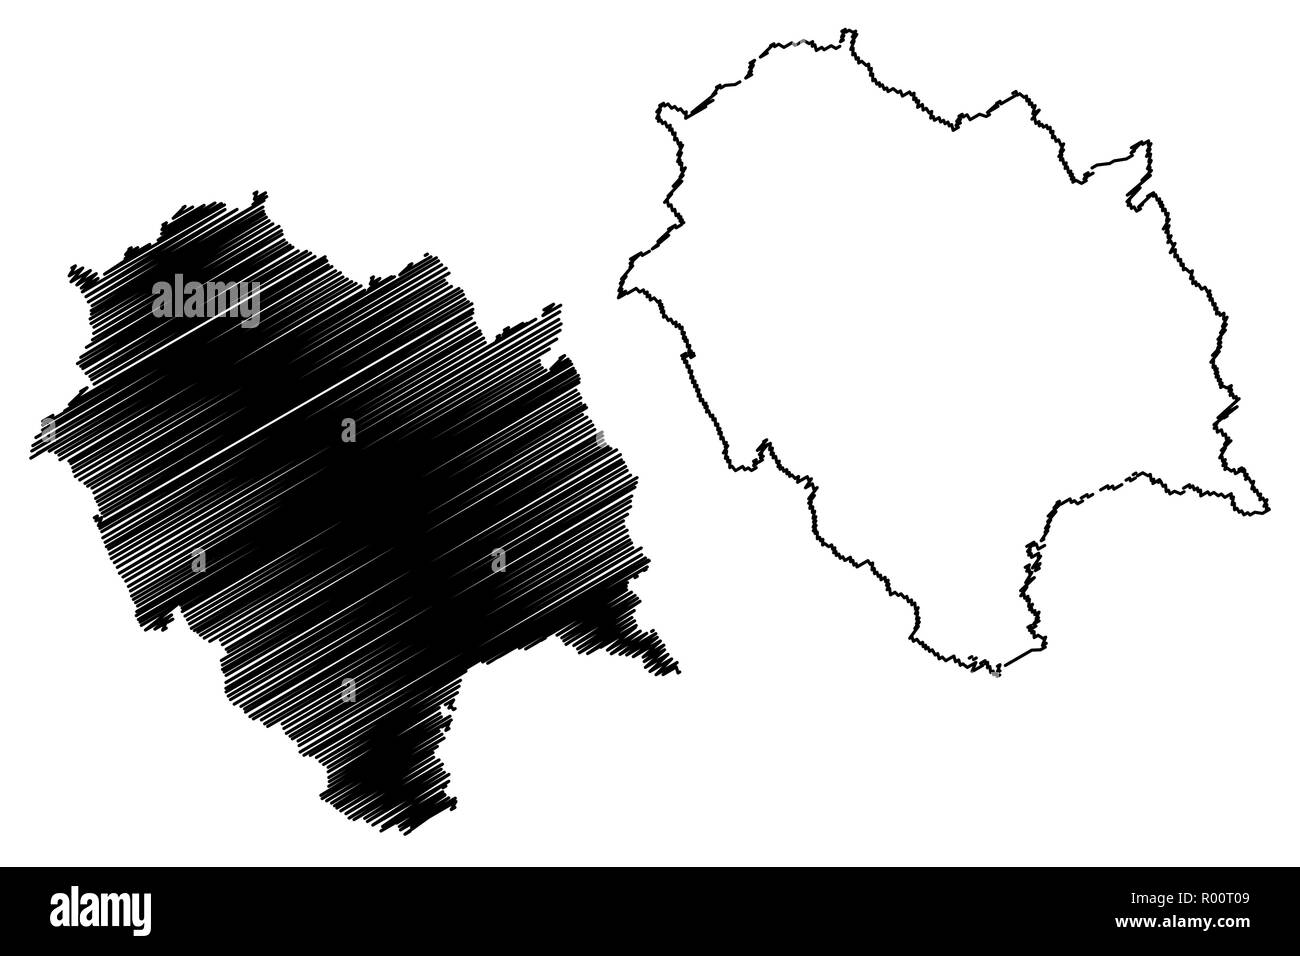 Himachal Pradesh (States and union territories of India, Federated states, Republic of India) map vector illustration, scribble sketch Himachal Prades - Stock Vector